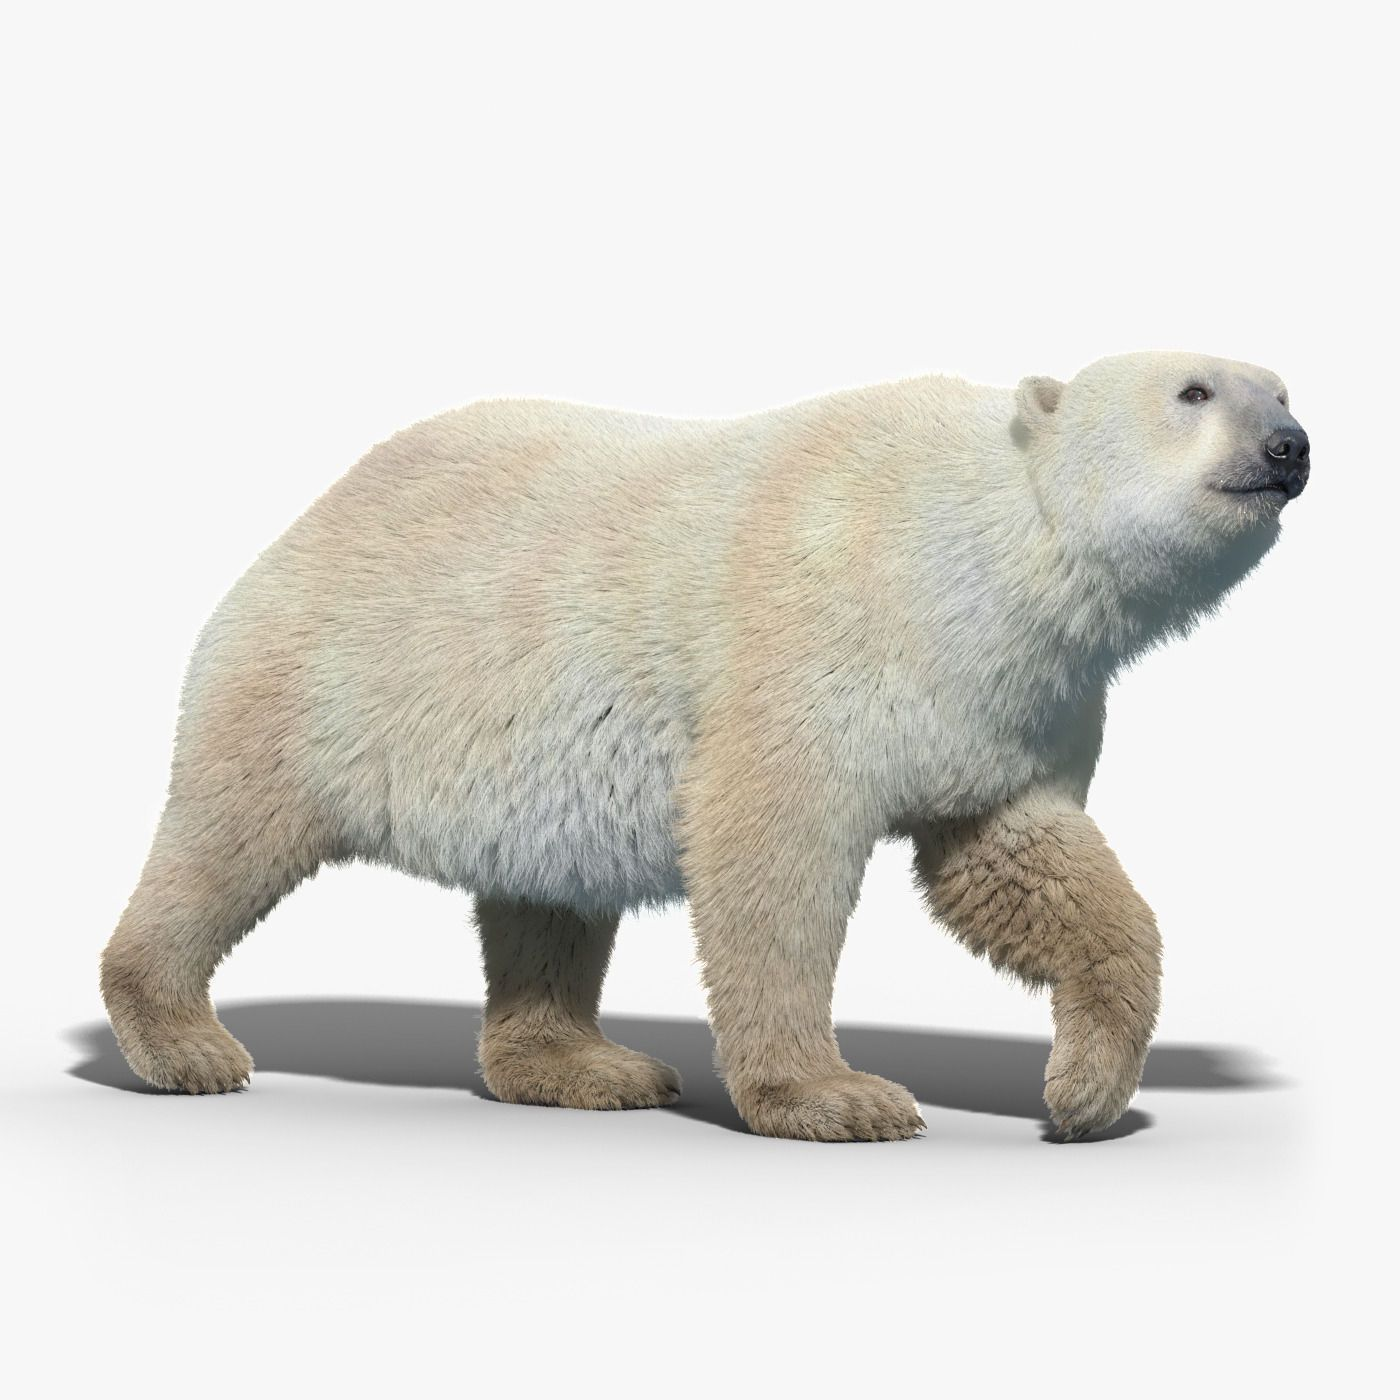 Polar Bear FUR RIGGED by cgmobile. / You can buy this 3D